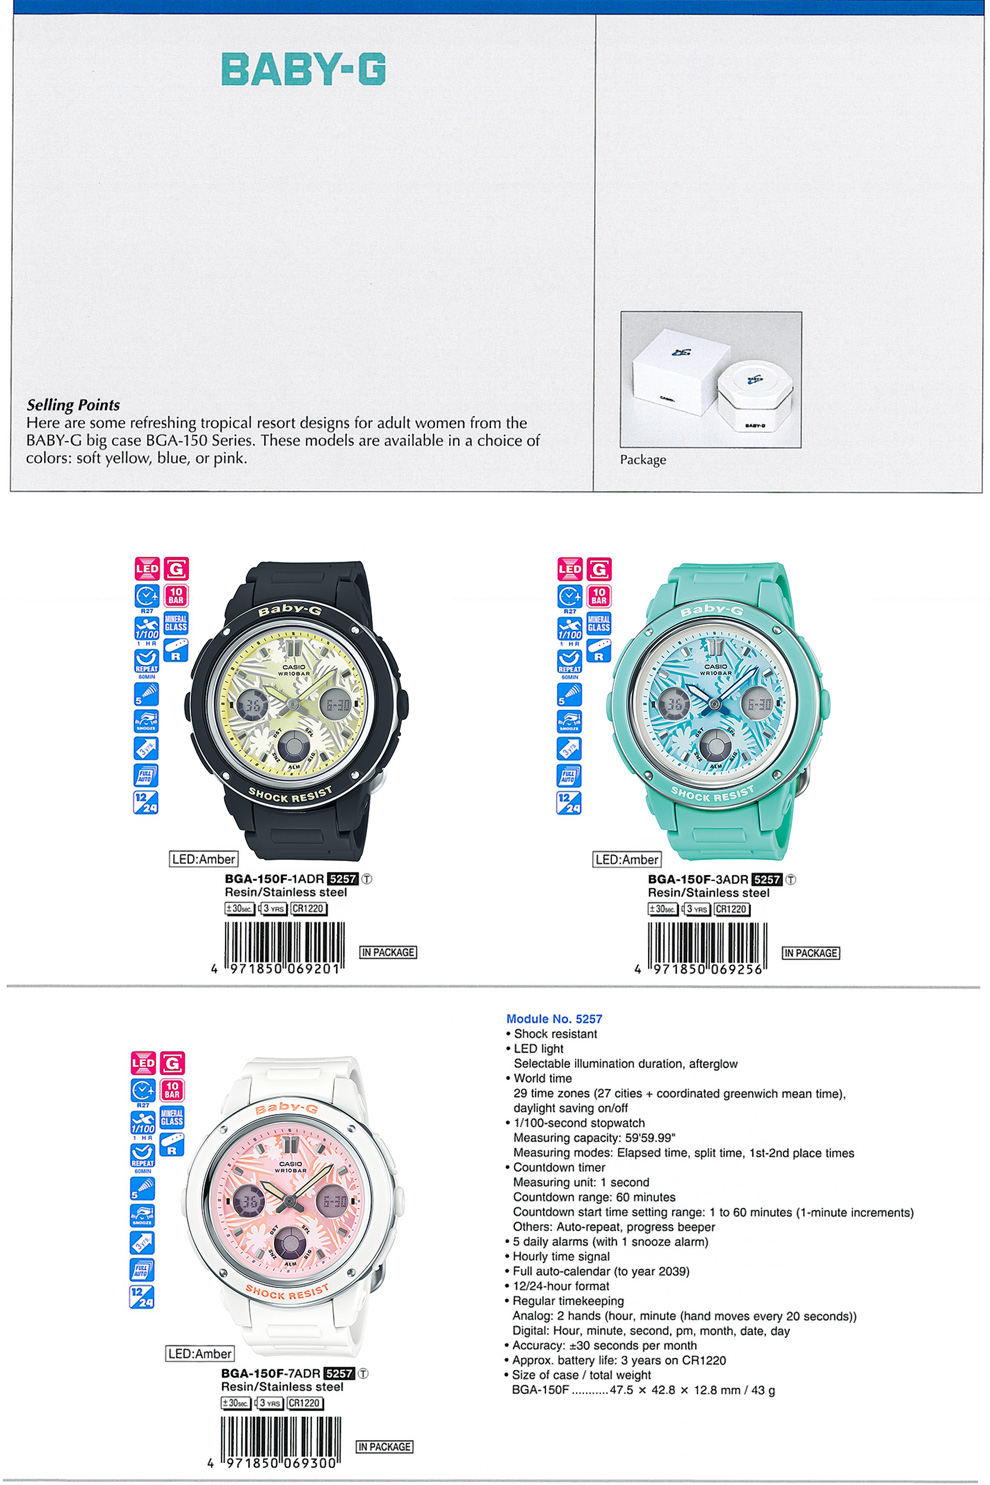 Watch Corner Products Casio Baby G Bga 180 2b Bga180 Bgd180 2015 04 30 Bga150f